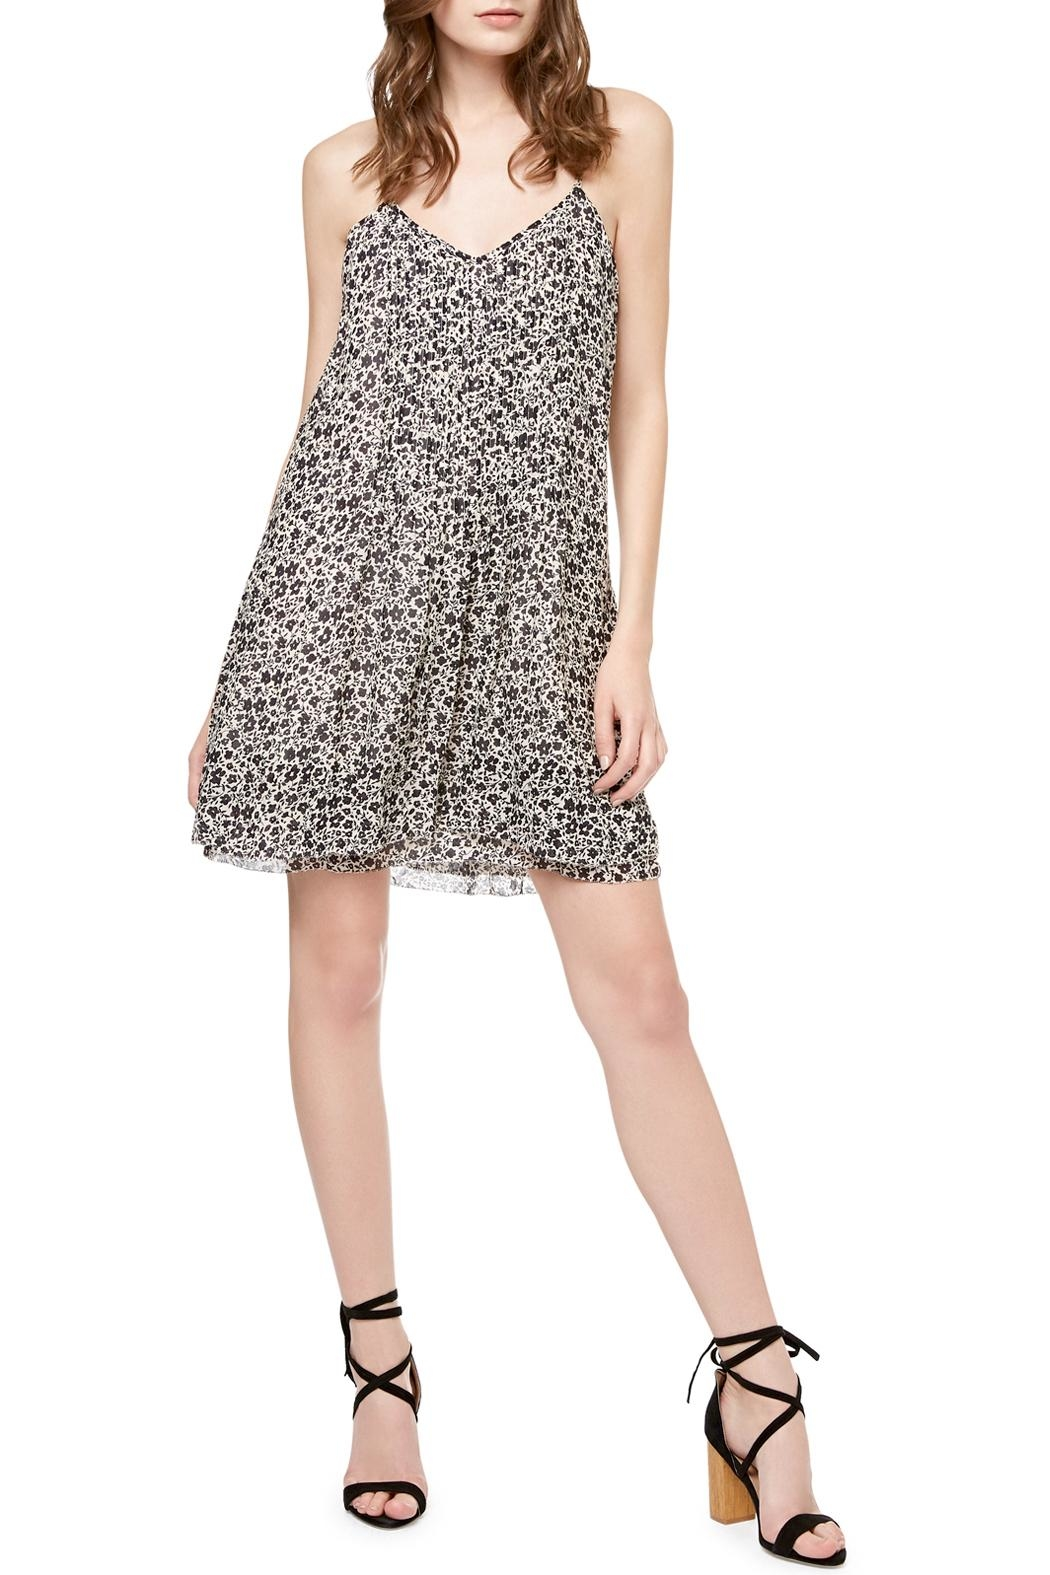 Sanctuary Spring Fling Dress - Front Cropped Image